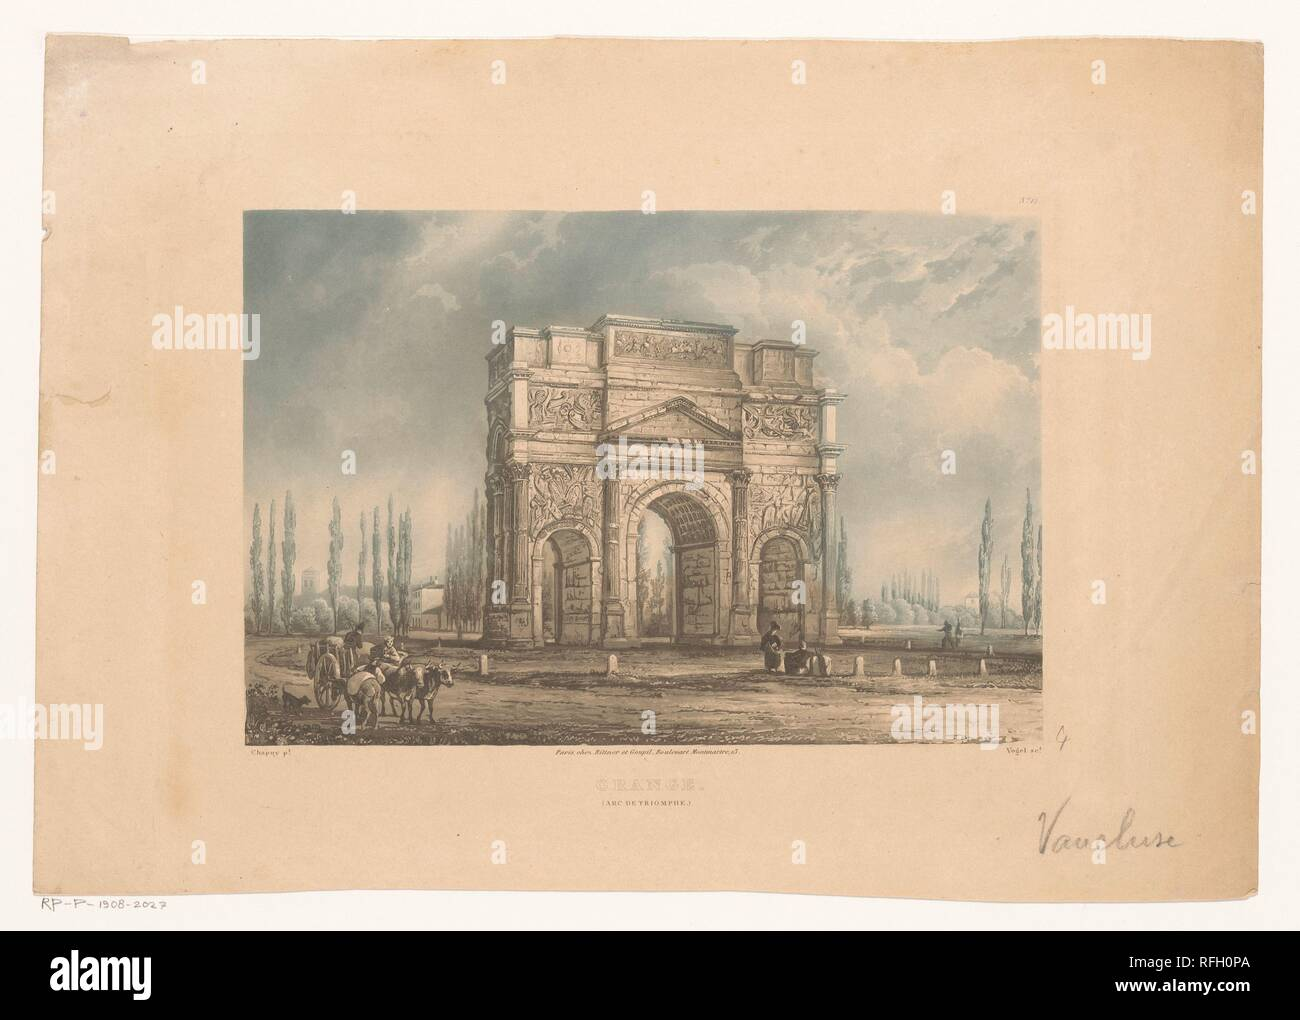 Landscape with the triumphal arch of Orange with travelers, Vogel (printmaker), after Nicolas Marie Joseph Chapuy, 1829 - 1840.jpg - RFH0PA 1RFH0PA - Stock Image